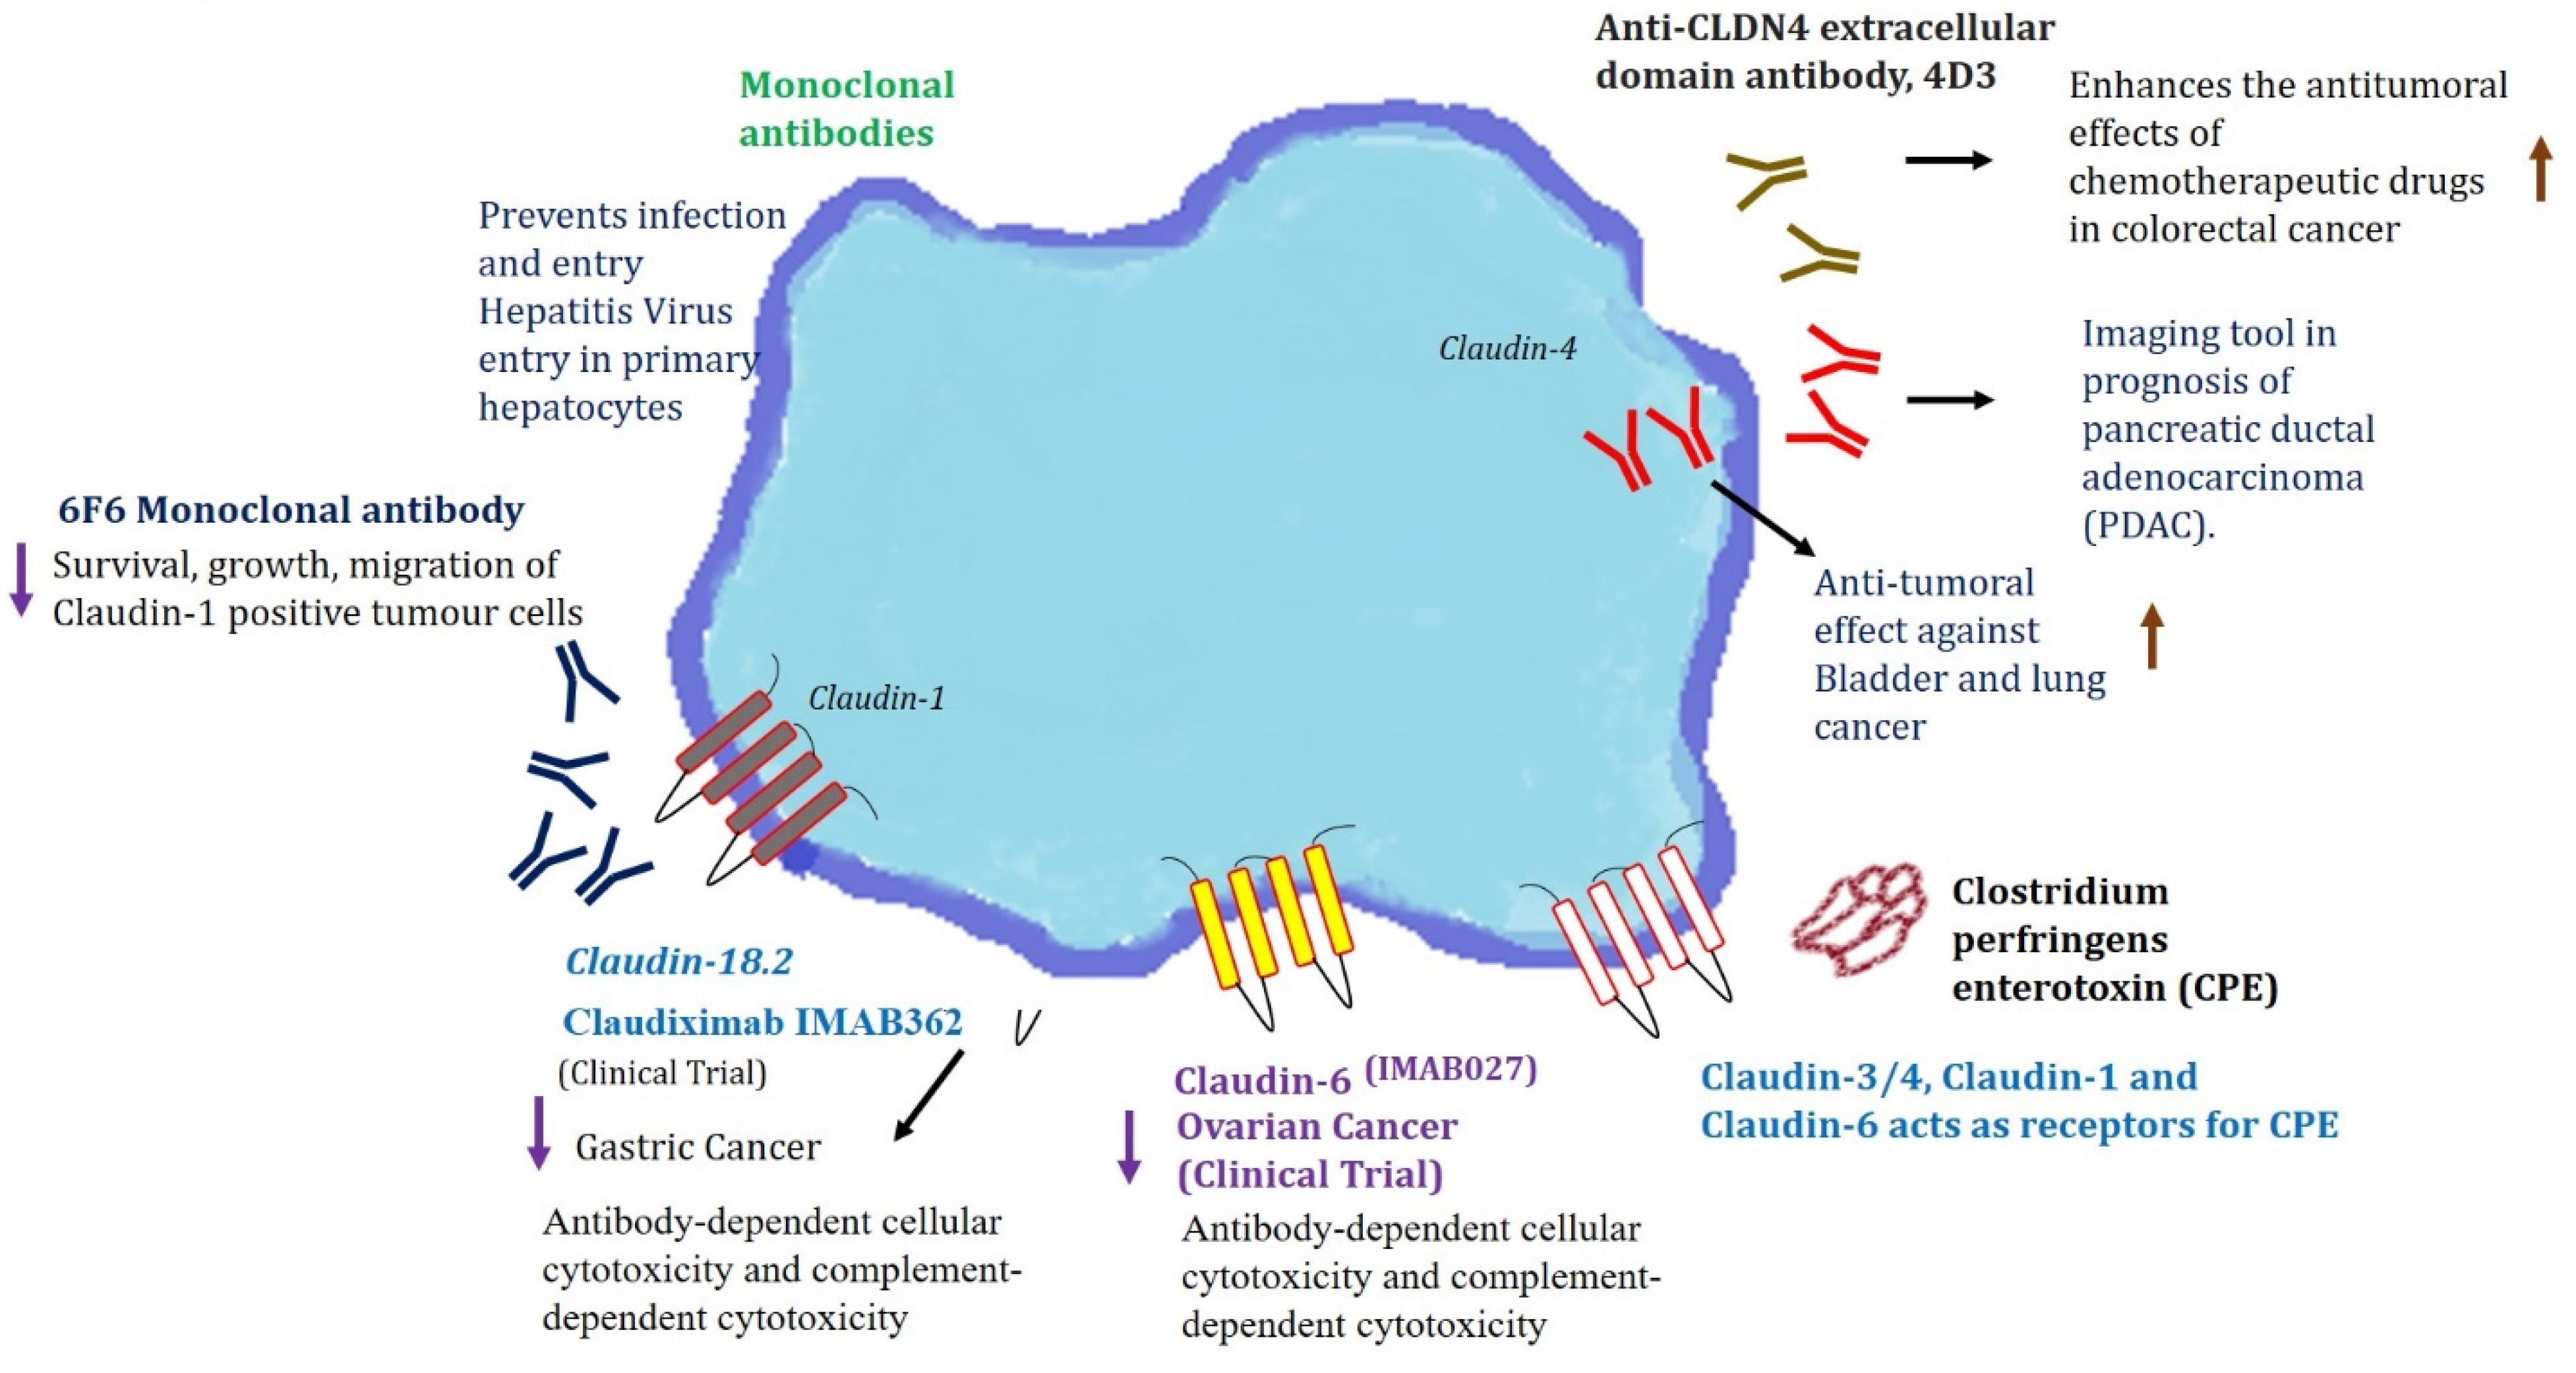 Ijms Free Full Text Role Of Claudin Proteins In Regulating Cancer Stem Cells And Chemoresistance Potential Implication In Disease Prognosis And Therapy Html